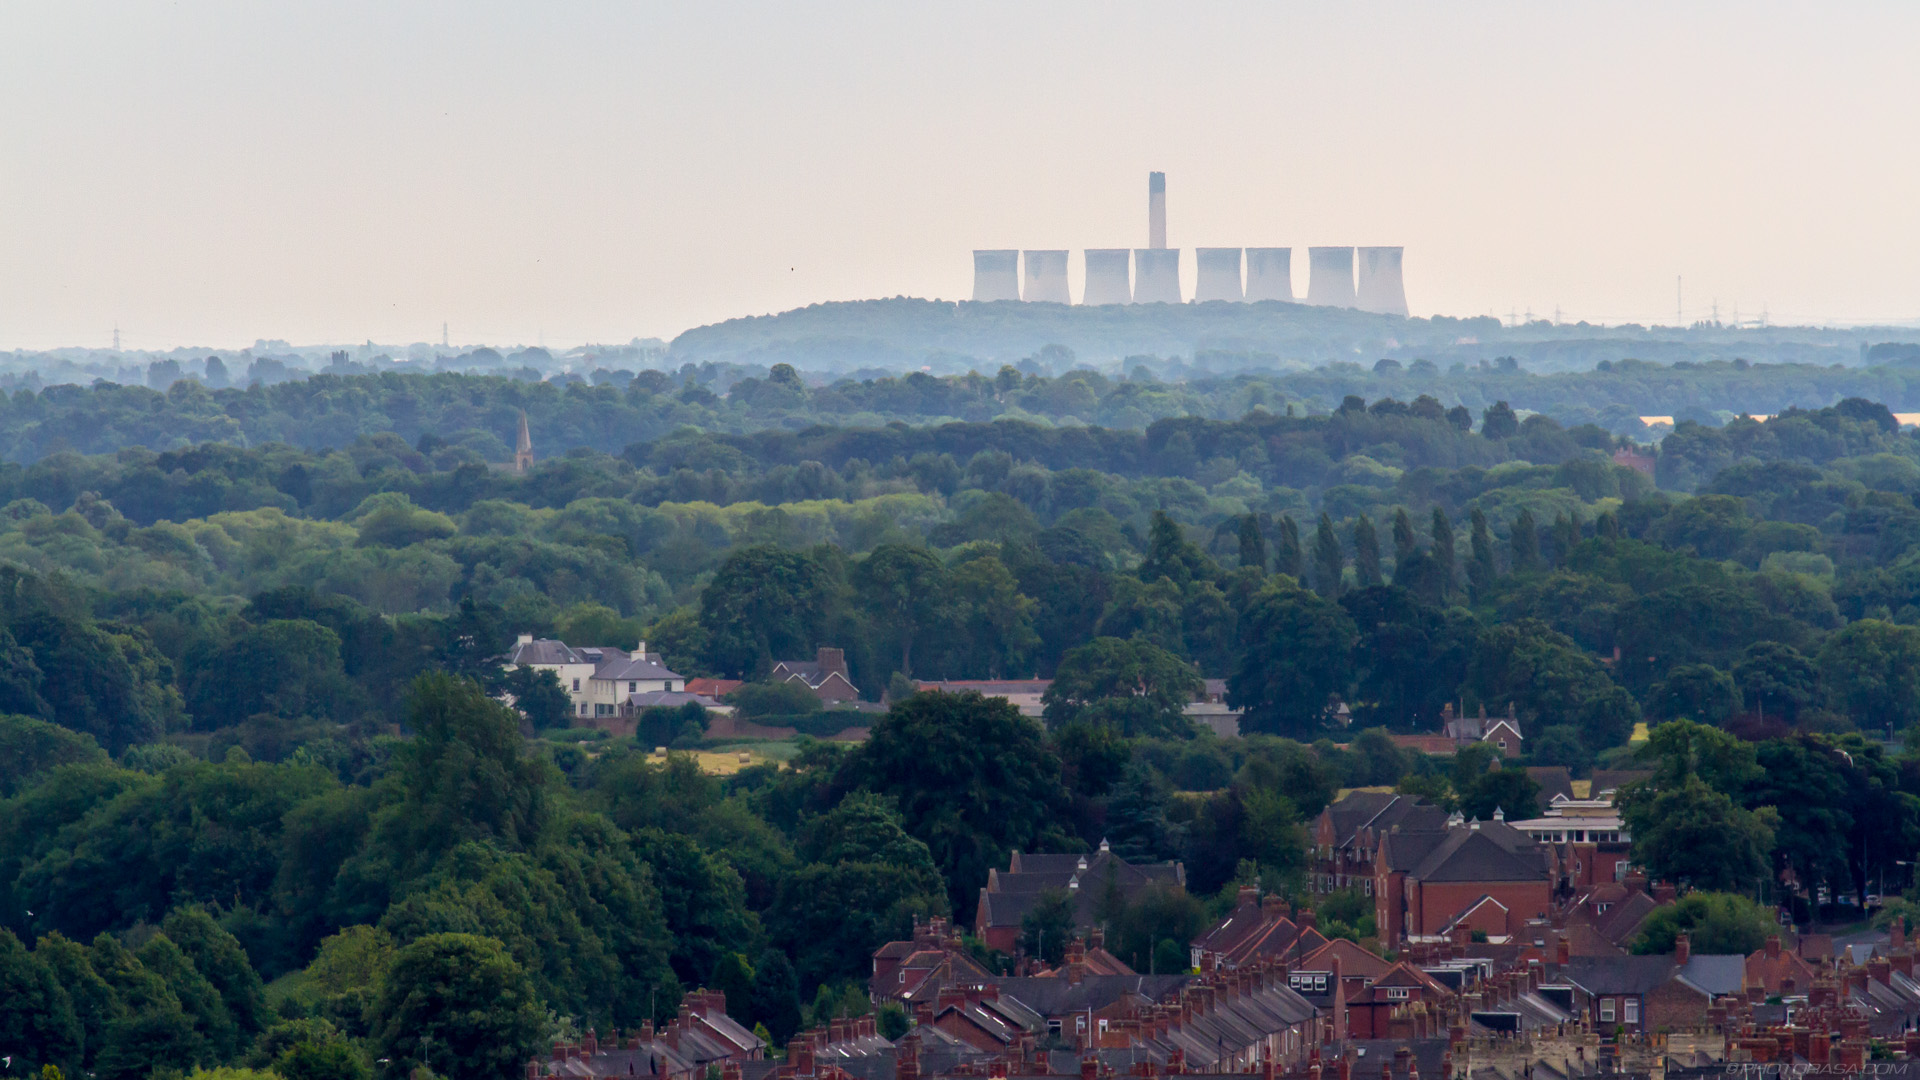 https://photorasa.com/yorkminster-cathedral/eggborough-power-station-from-yorkminster-tower/